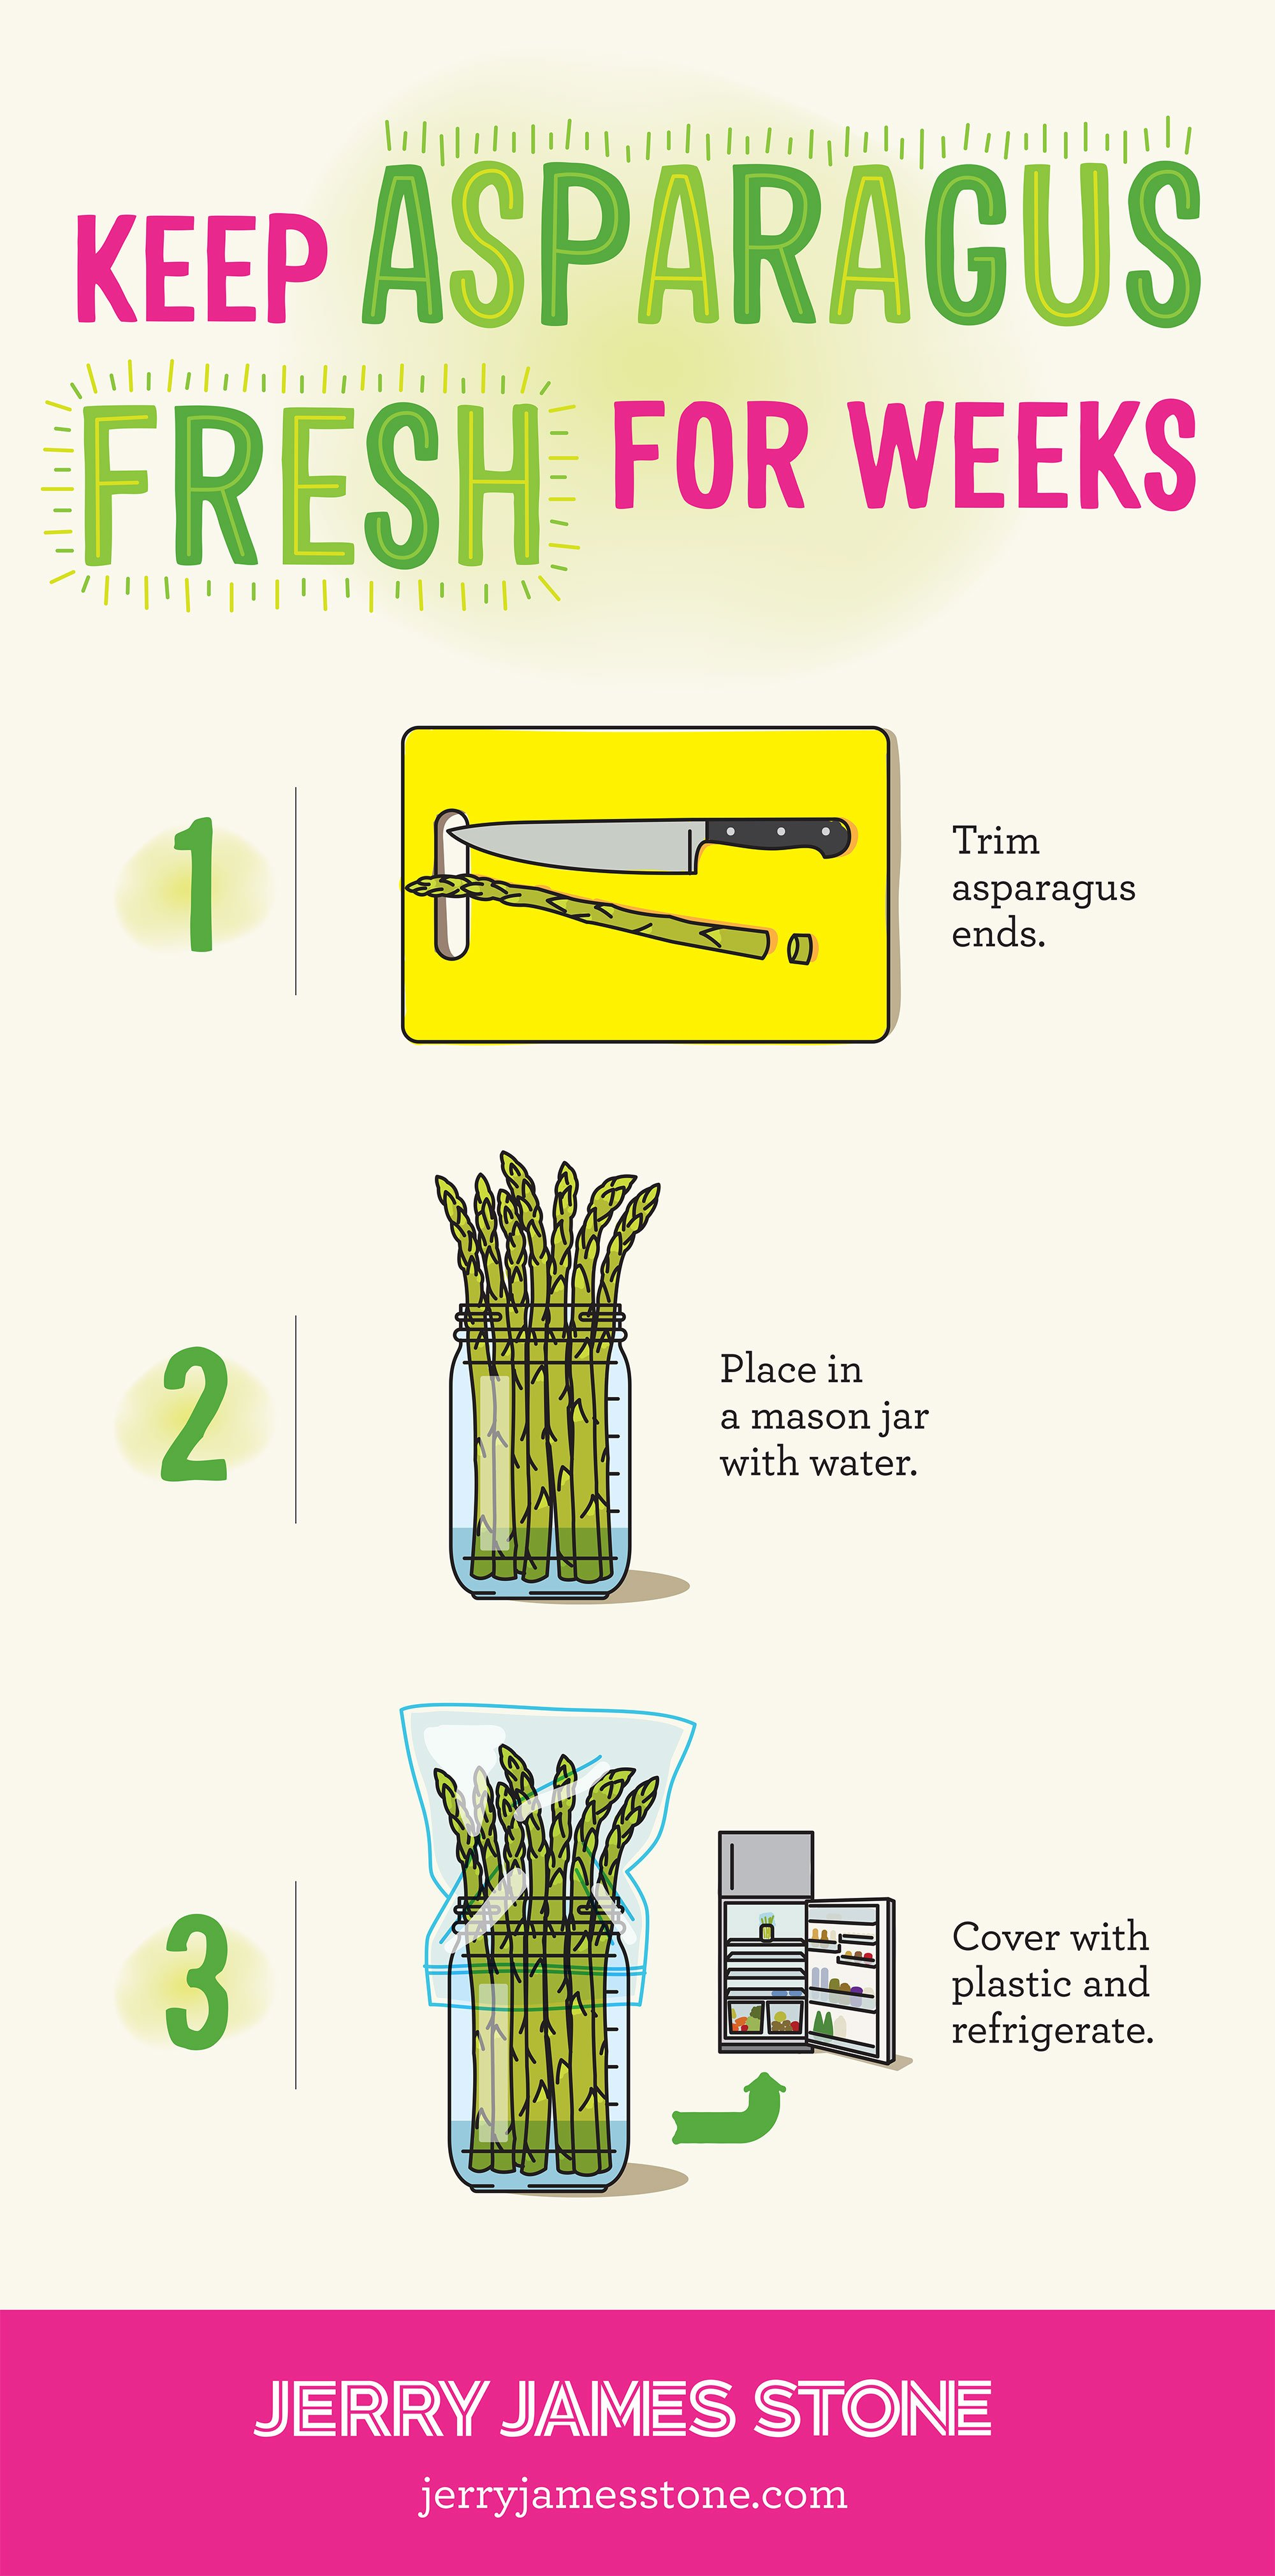 Keep Asparagus Fresh for Weeks Infographic